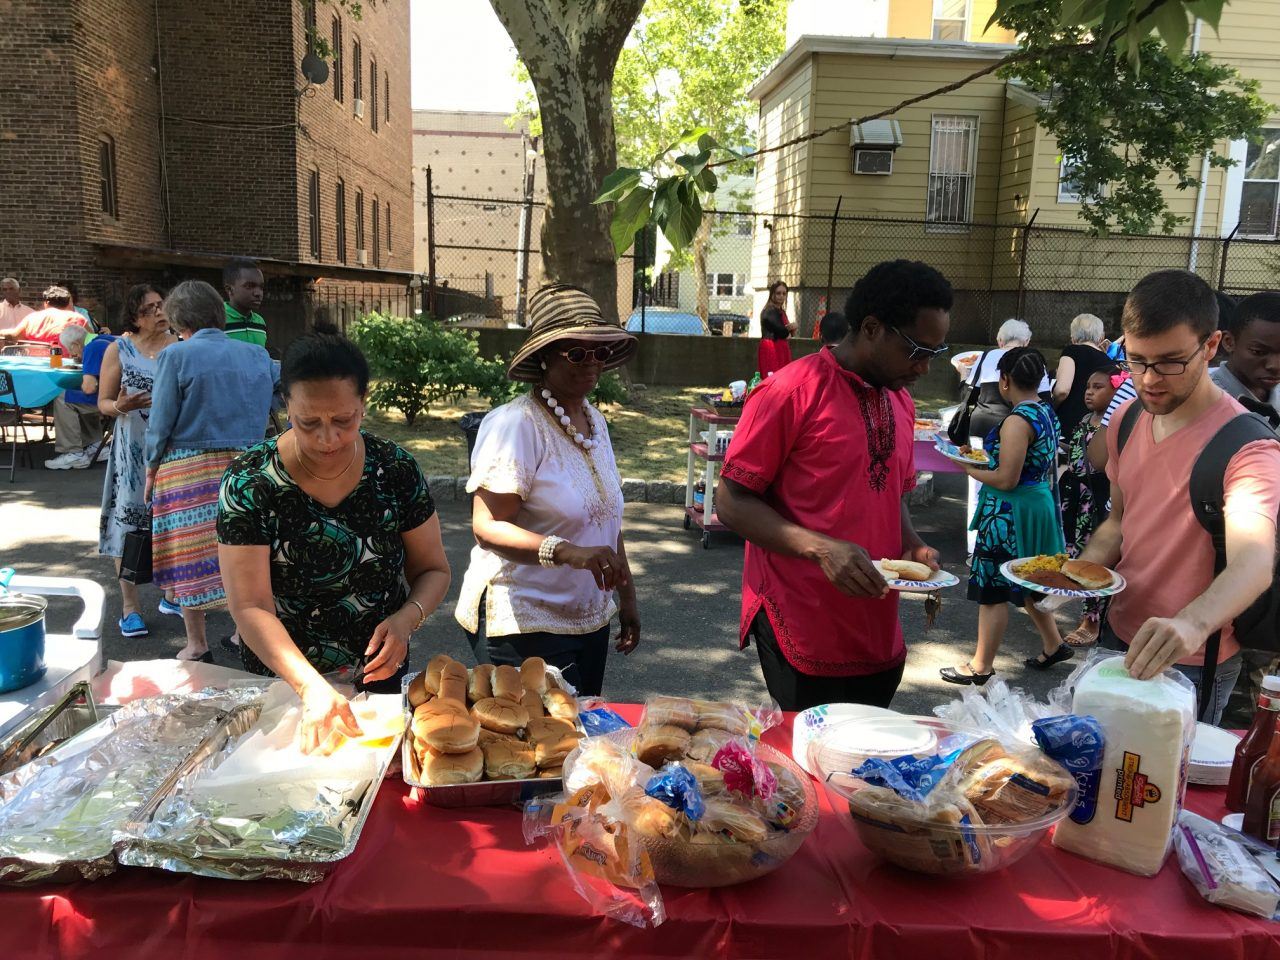 Church Picnic 2018 - The Old Bergen Church